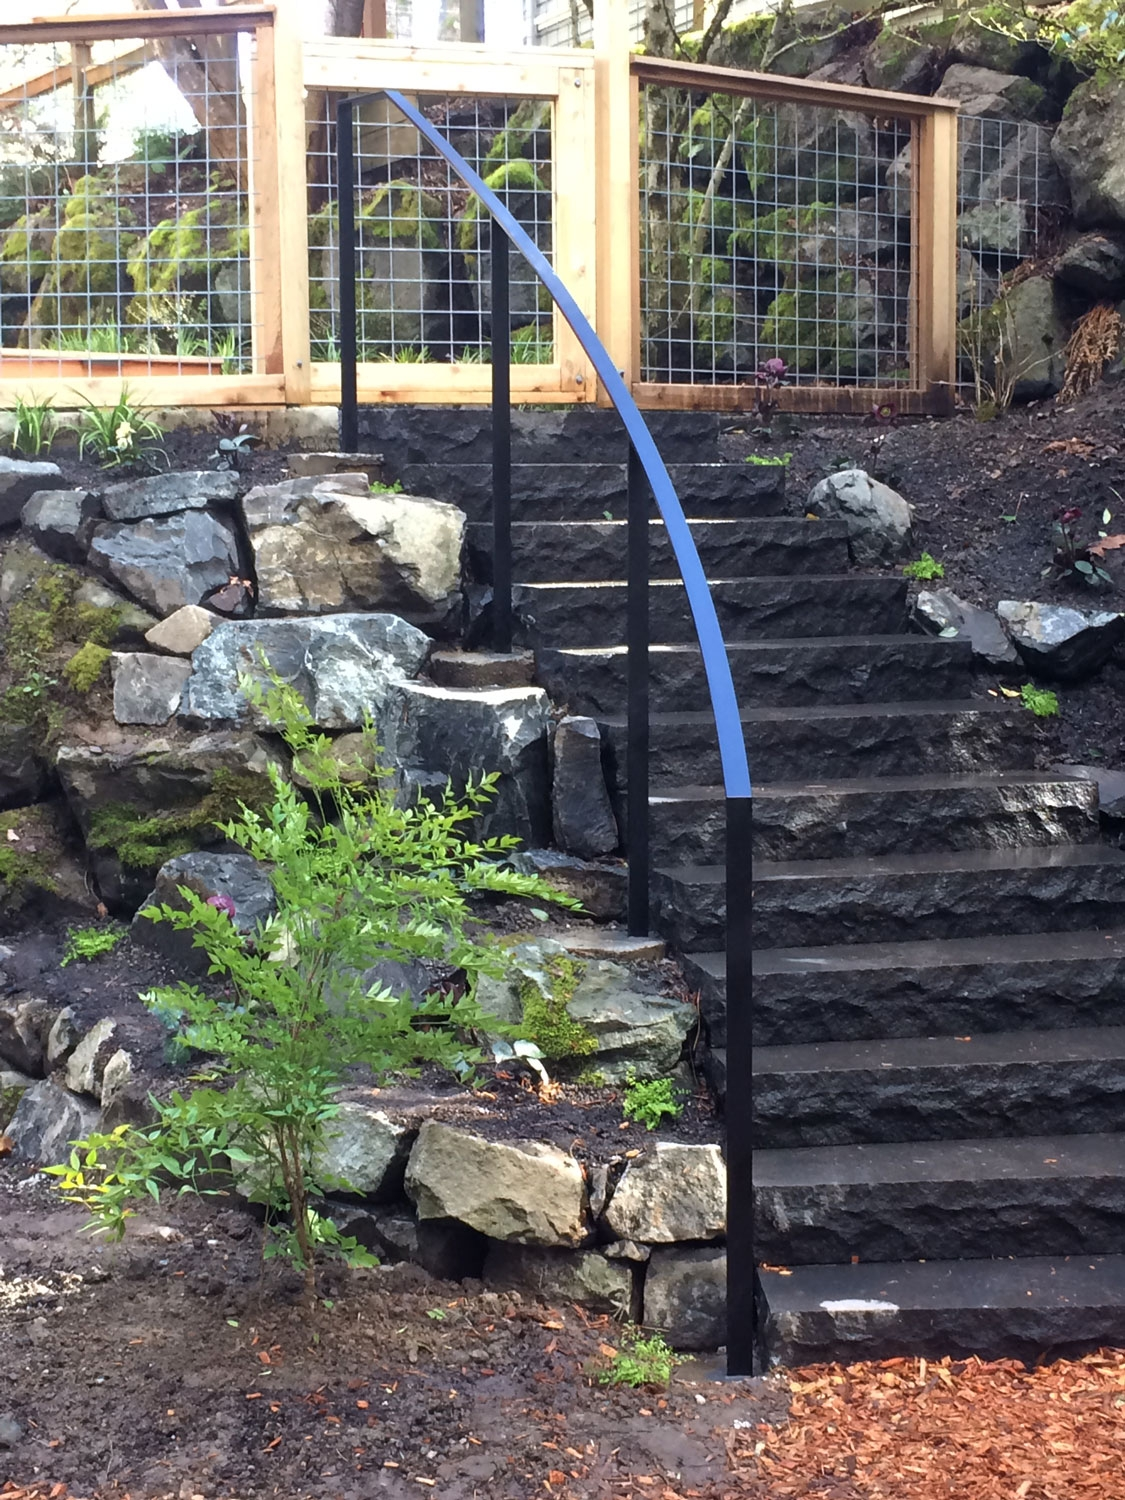 Exterior Metal Railings Ironwork Seattle Wa Blackbird Iron   Outside Metal Railings For Steps   Galvanized Iron   Wrought Iron Staircase Used   Decorative Iron Stair Rail Support   Steel Railing   Mixed